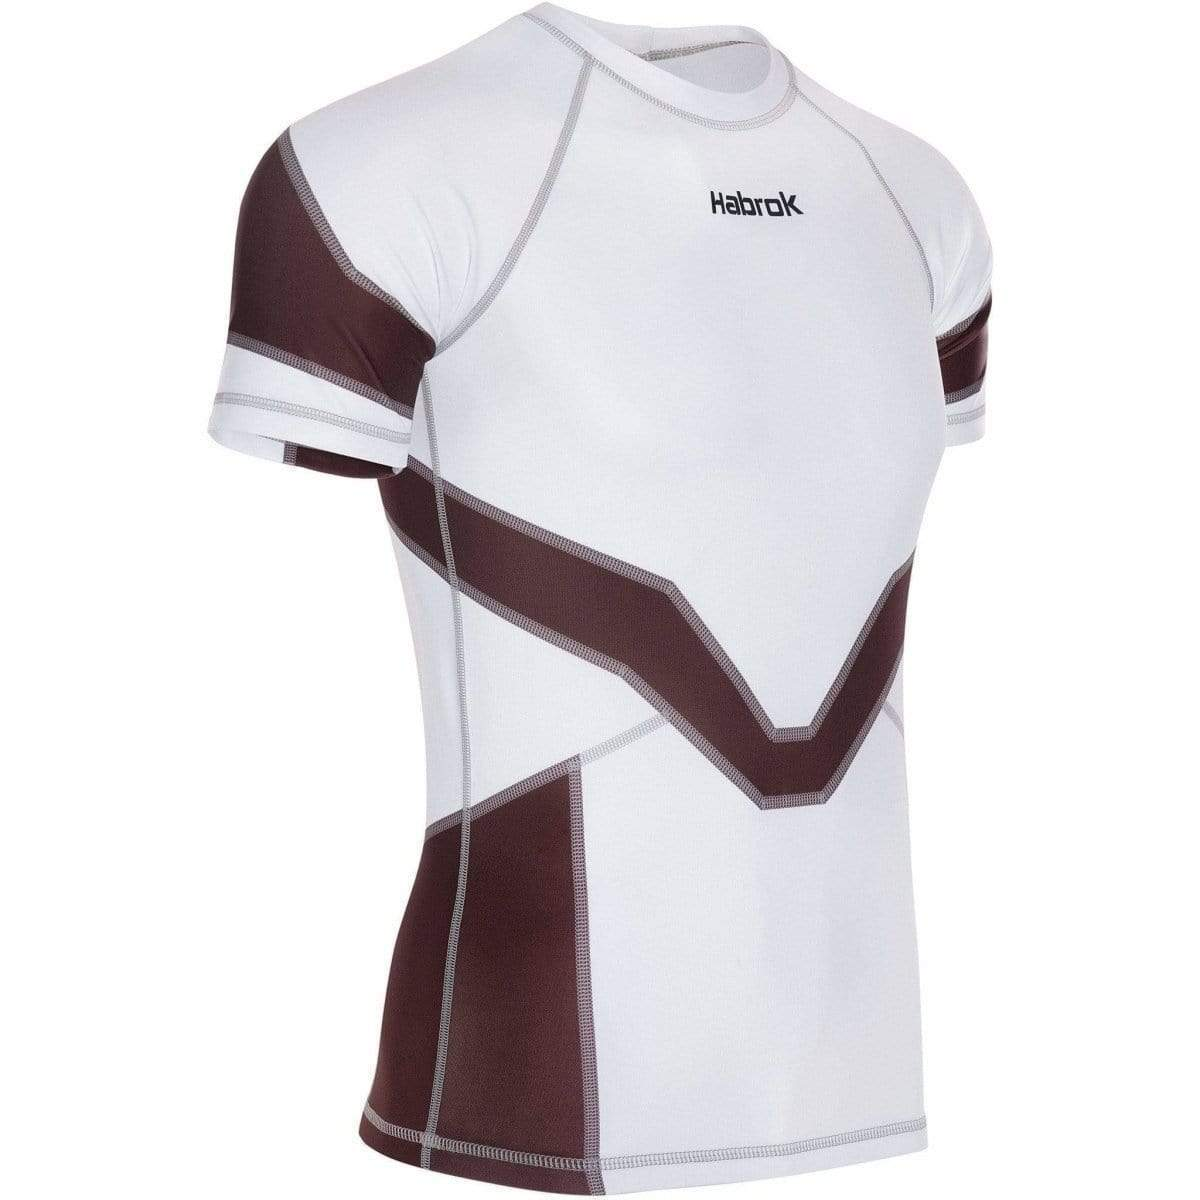 Habrok Rash Guard S / BROWN Transform 2.0 | Ranked Rash Guard Men | Half Sleeve | Men